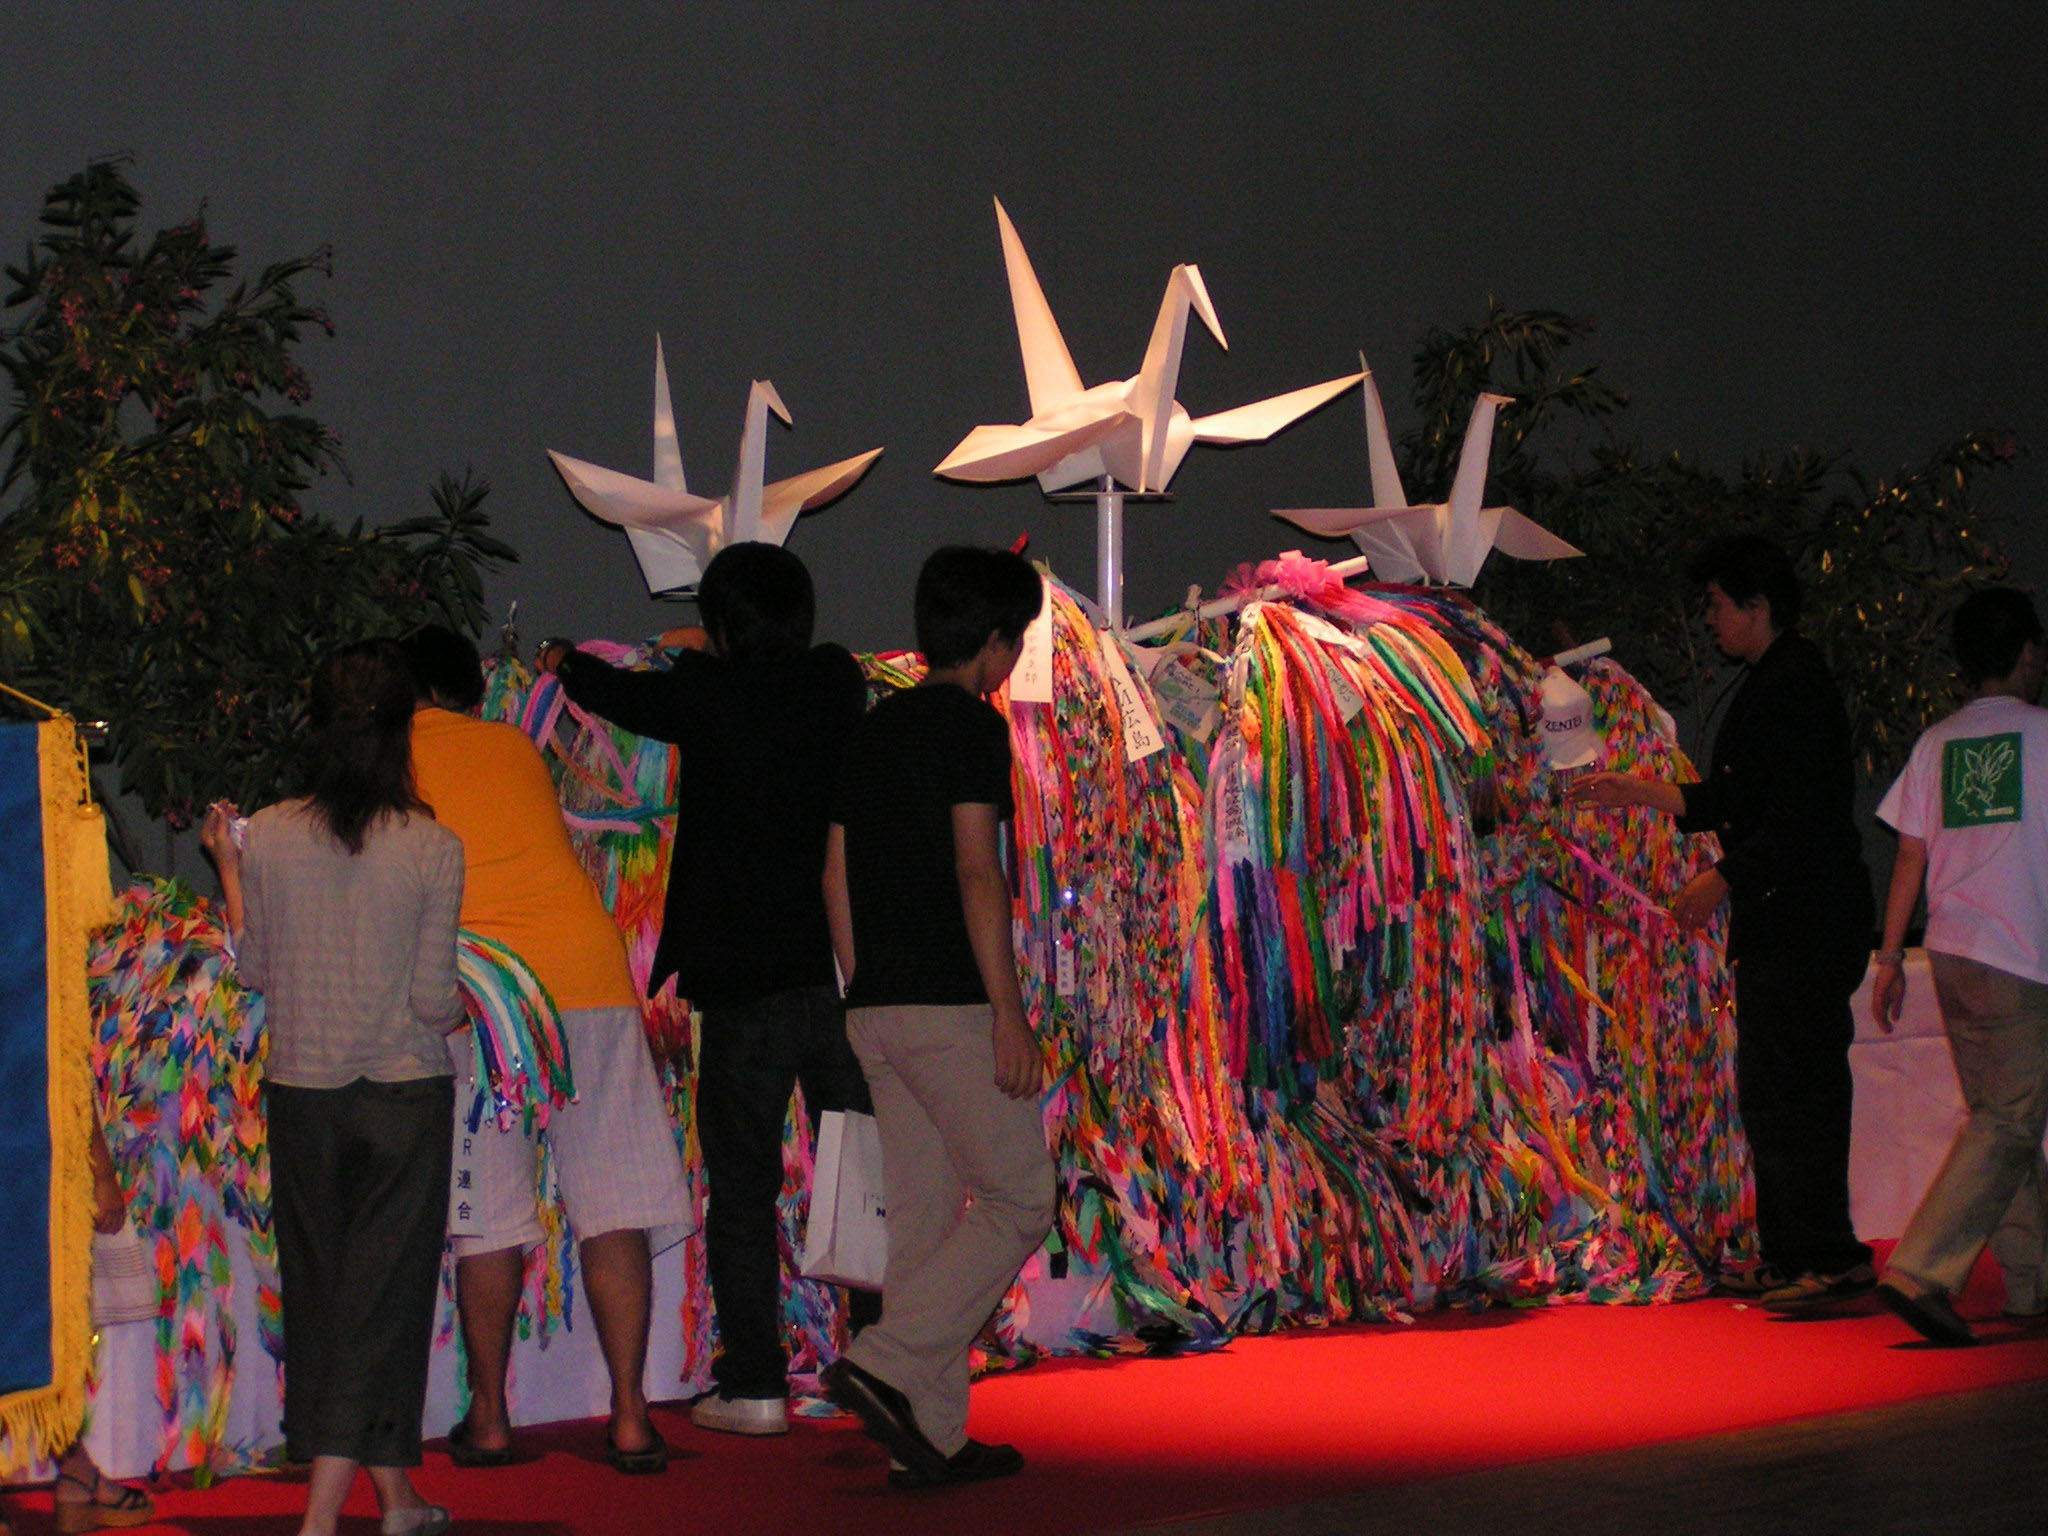 Photo: Union members from across the nation brought and dedicated origami paper cranes. (August 5, Hiroshima)